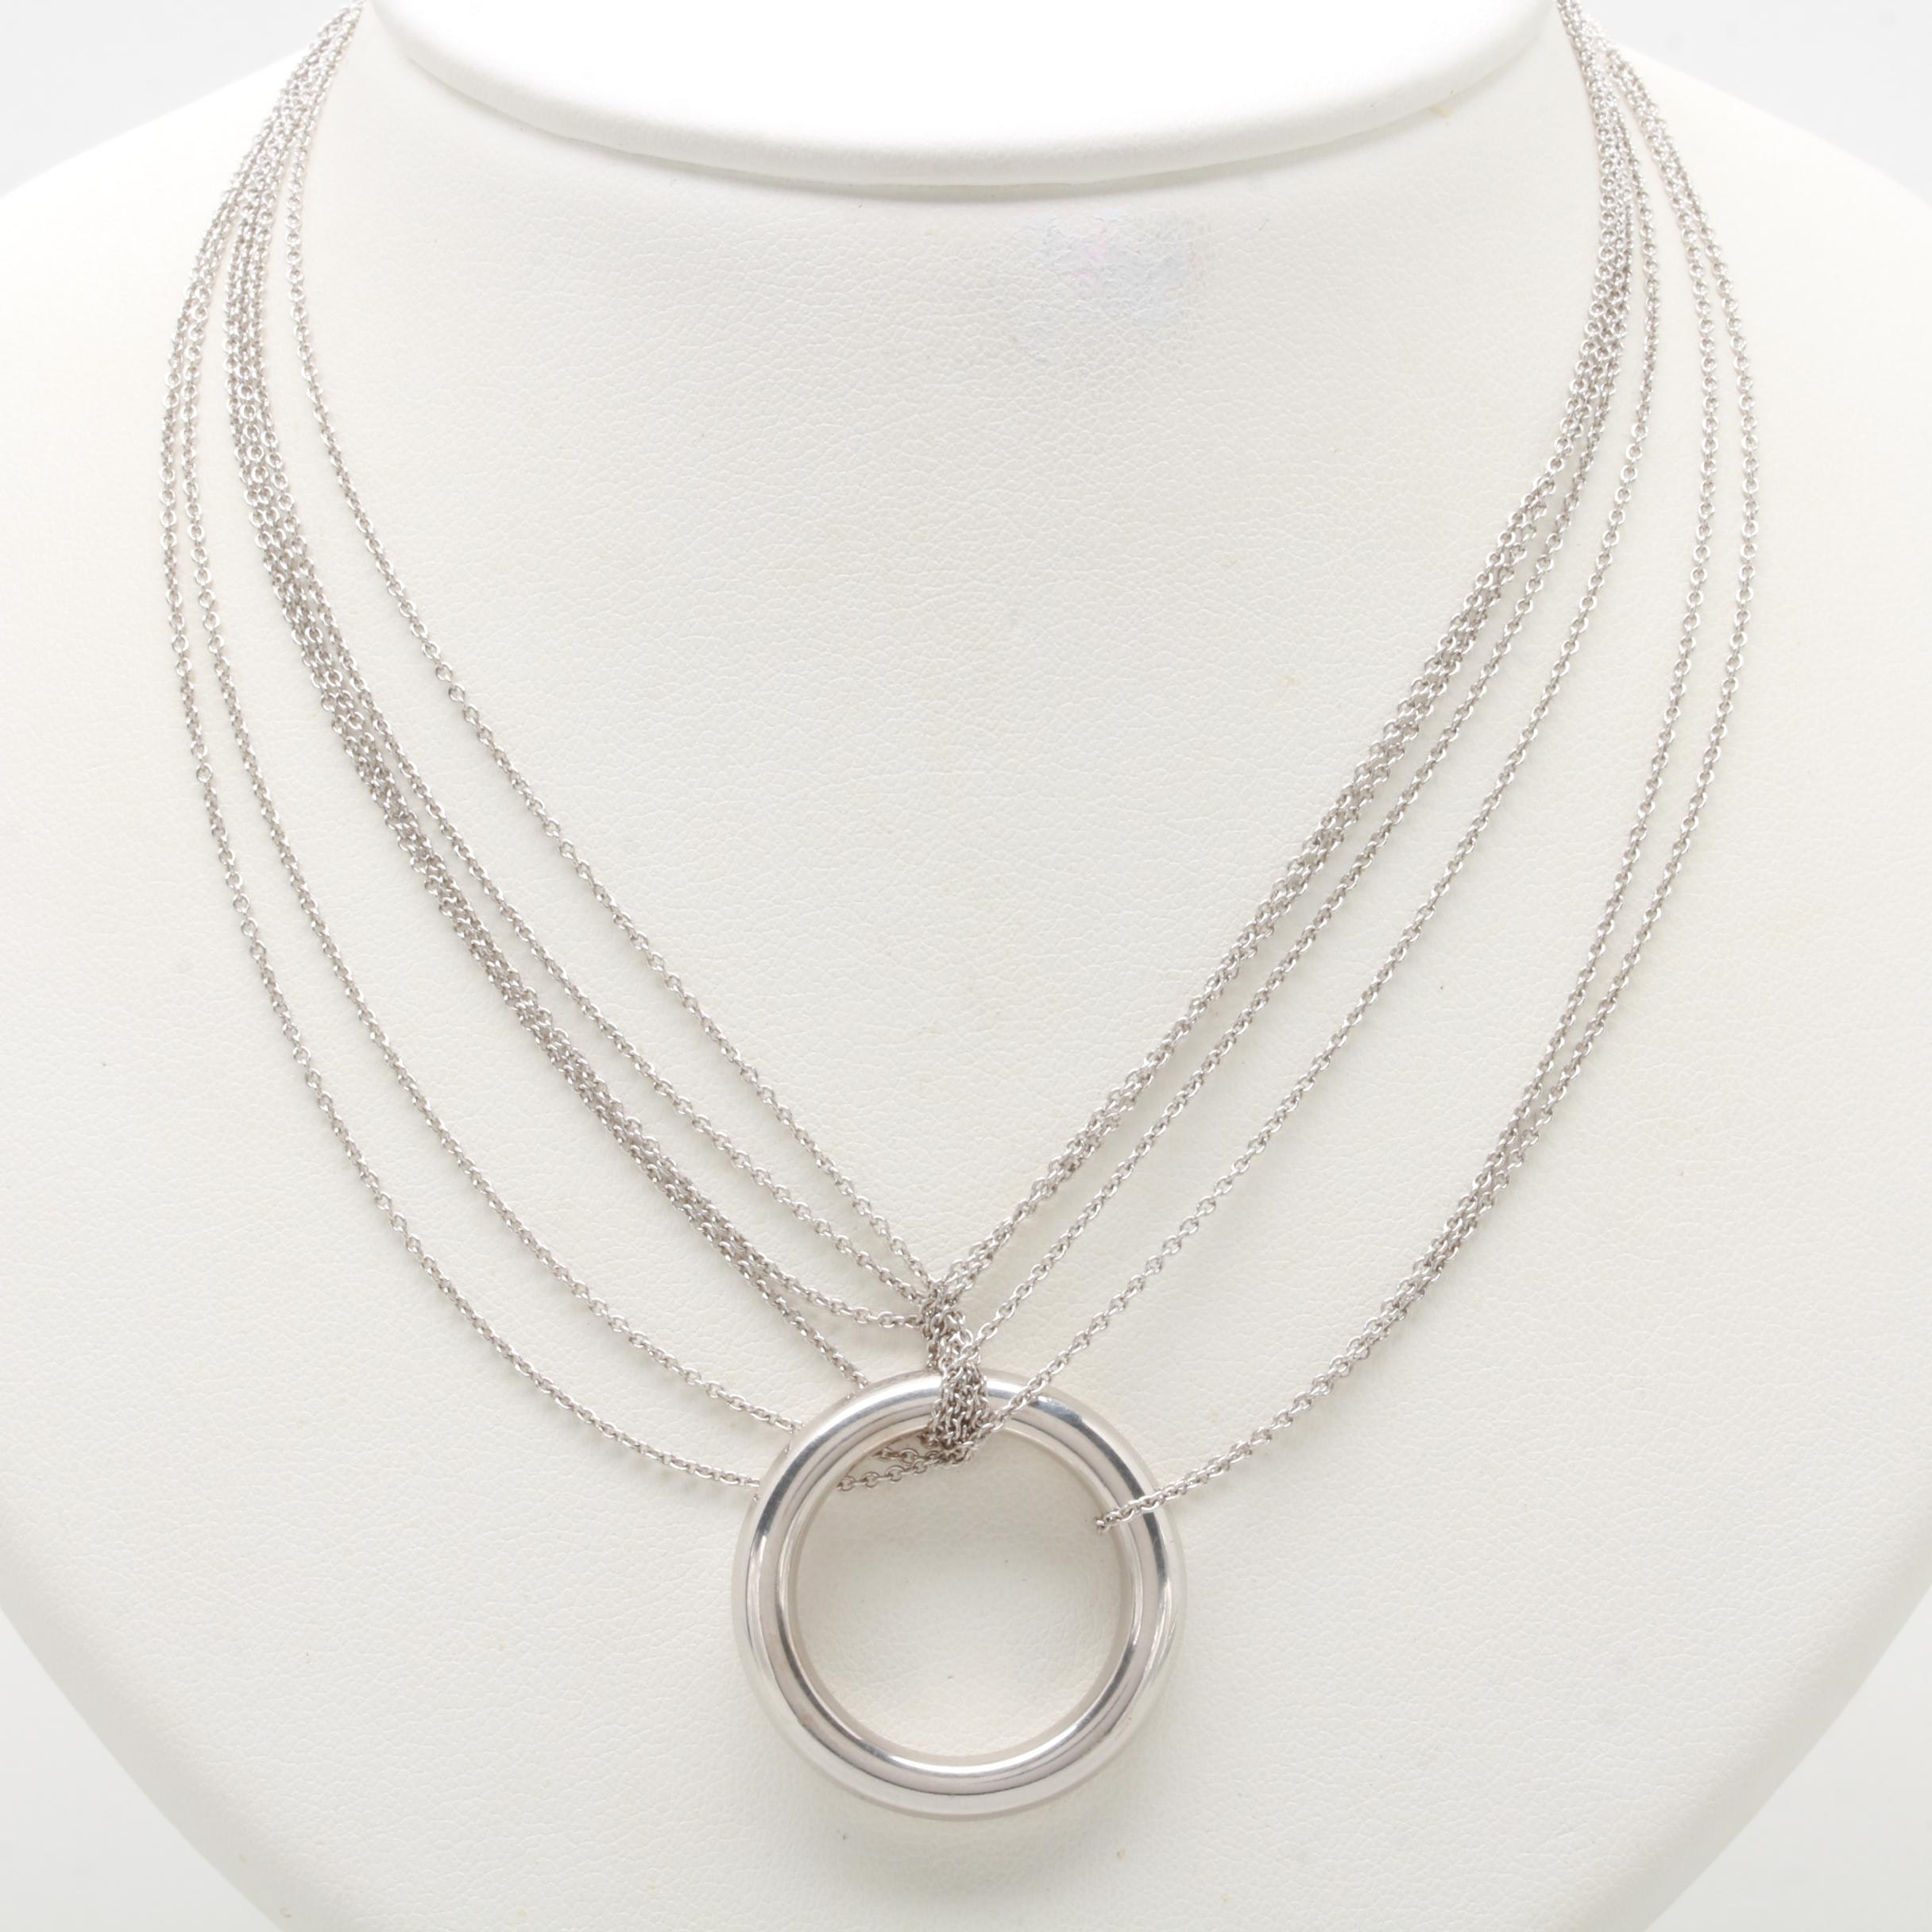 Milor 14K White Gold Multi Strand Necklace with Circle Pendant